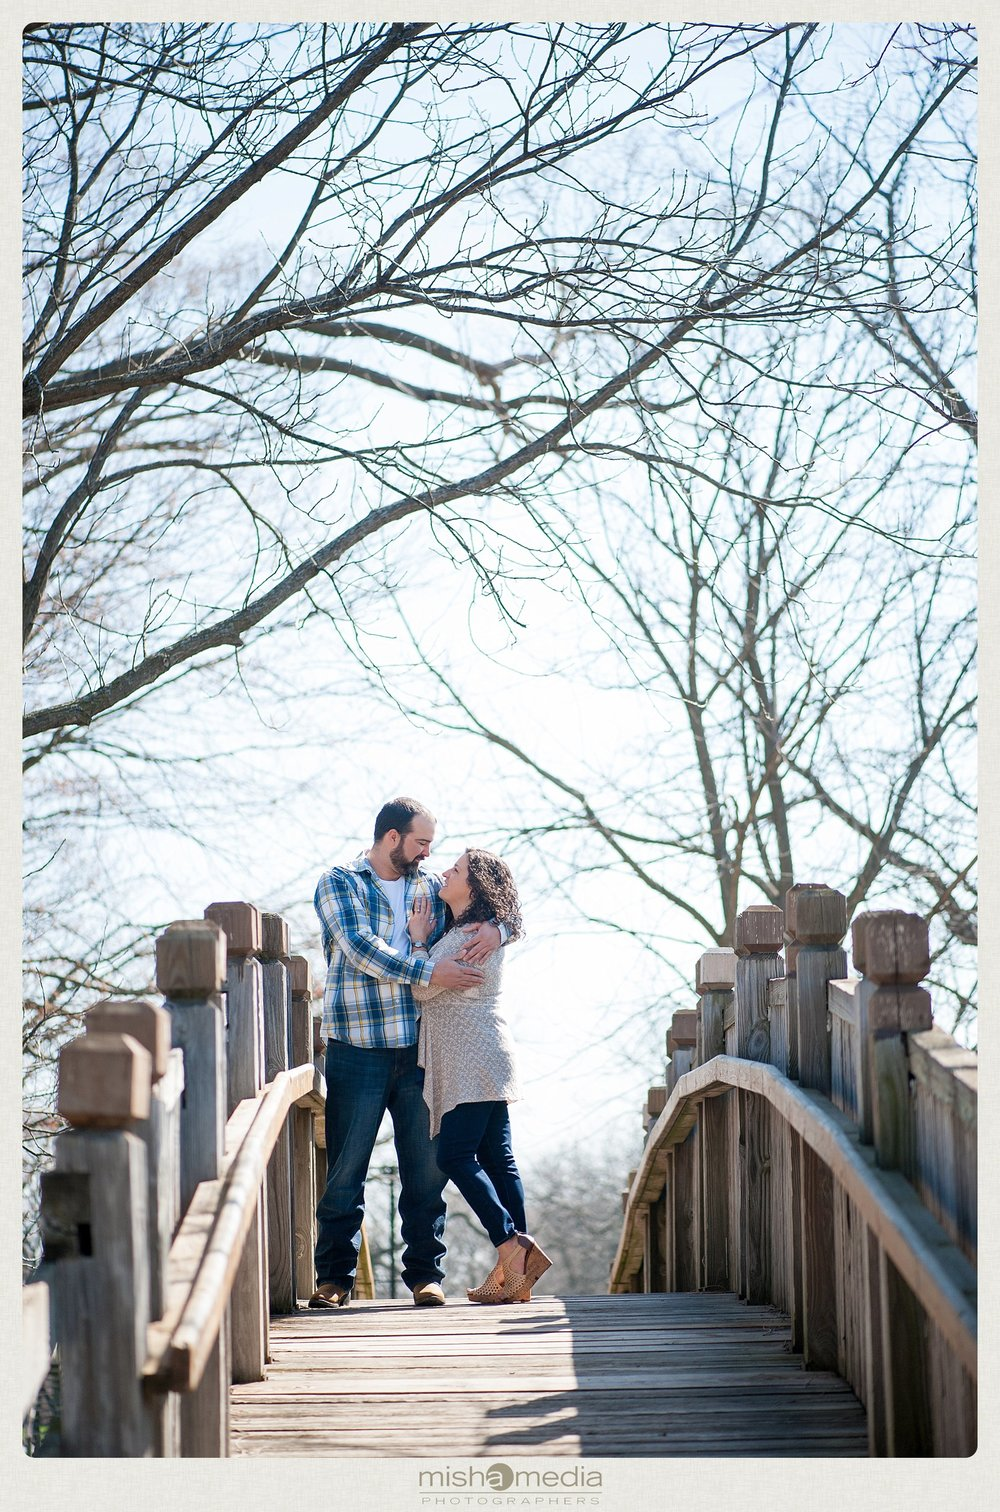 St.-James-Farm-wheaton-engagement-session_012.jpg